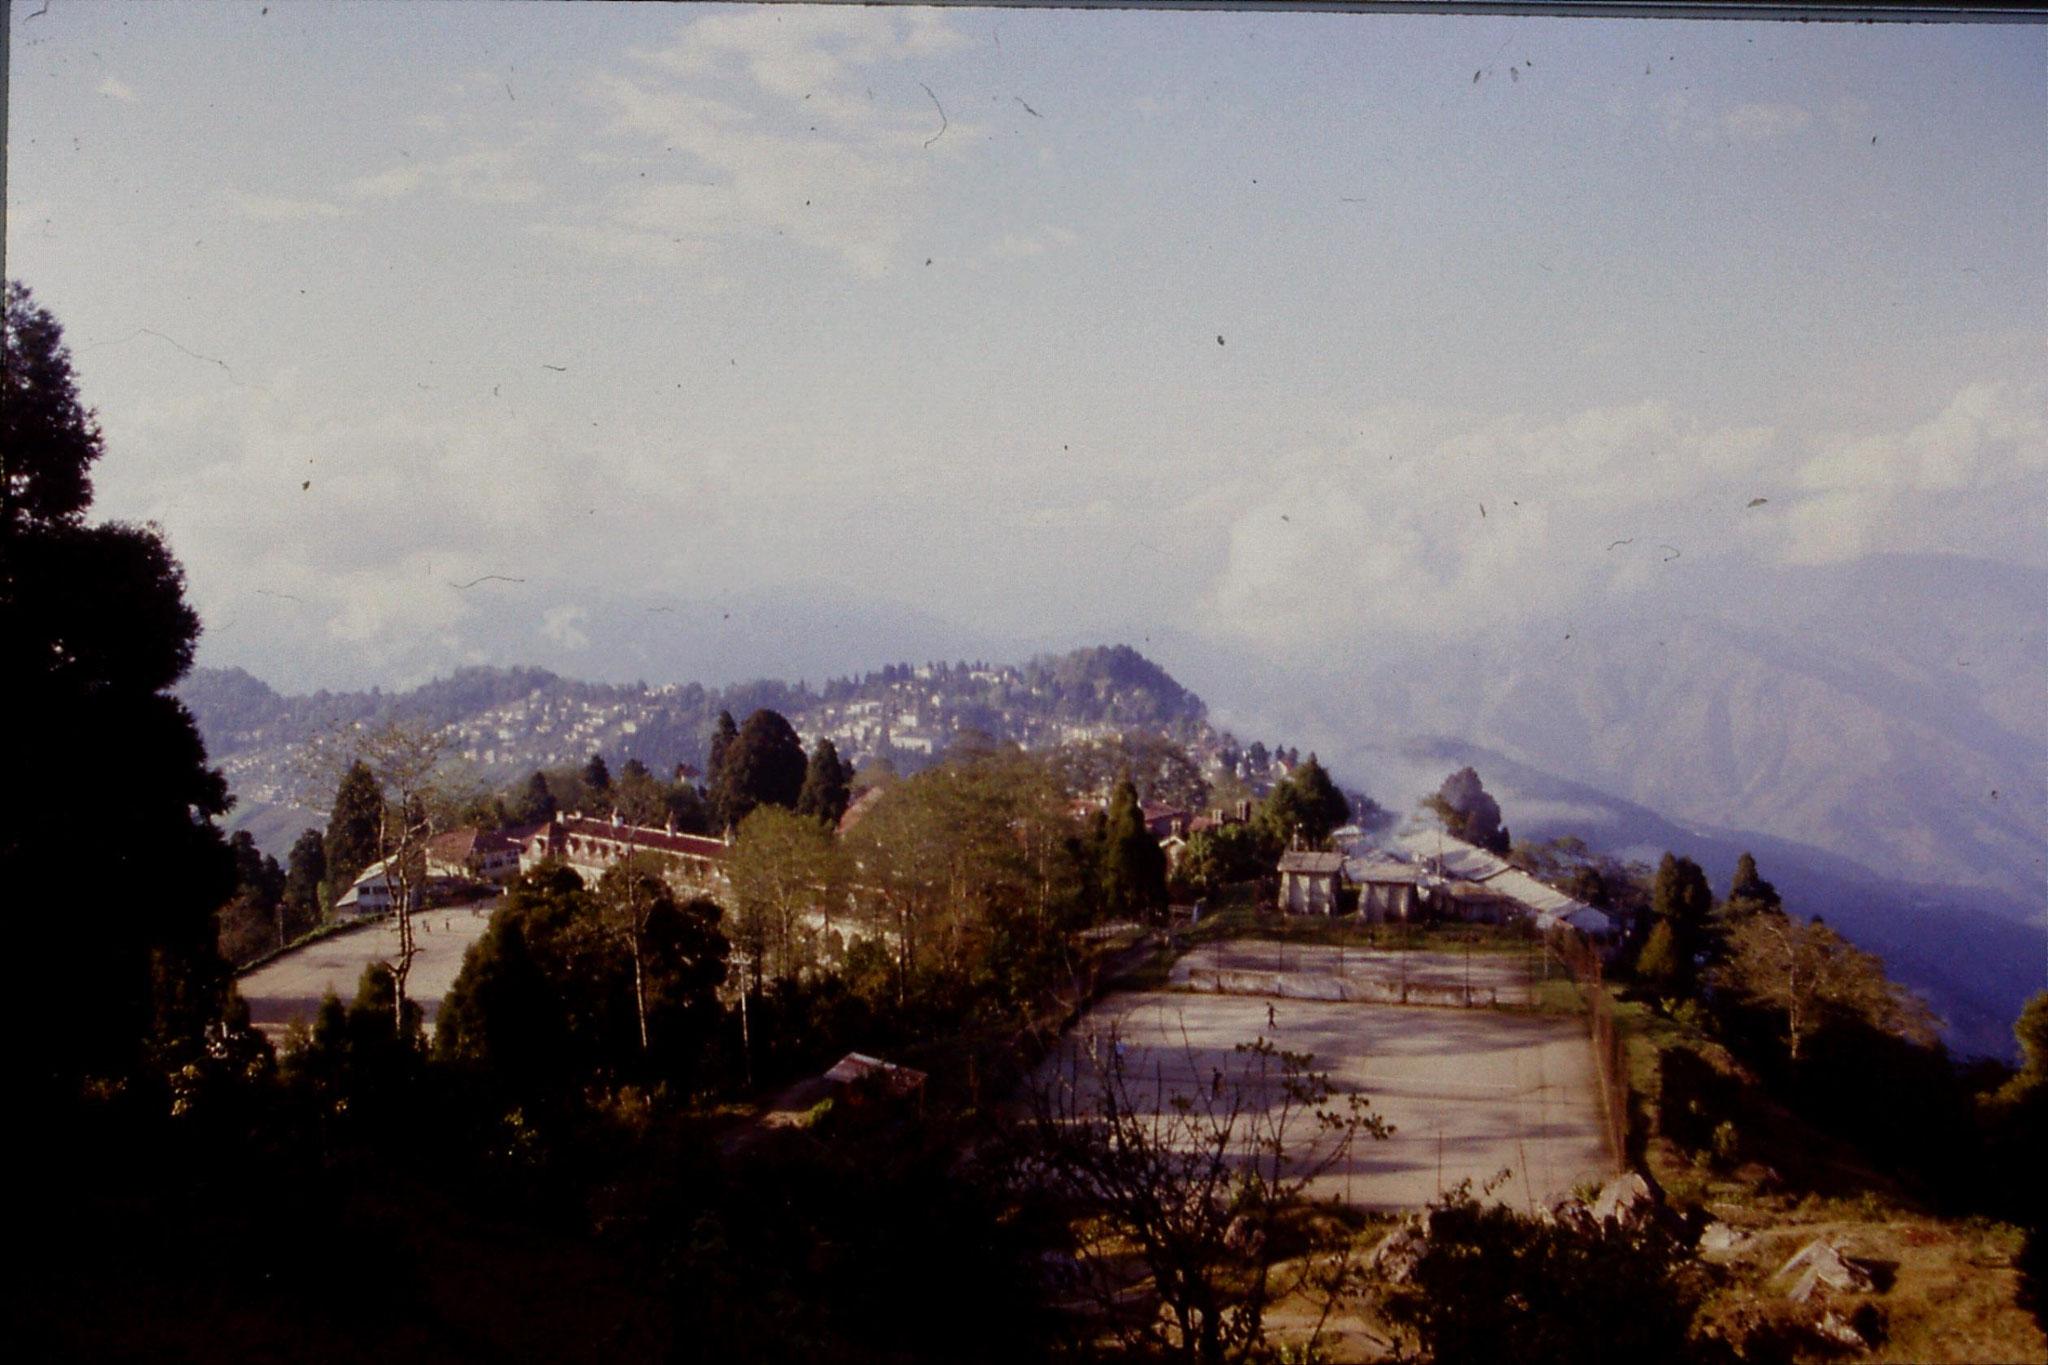 1/5/1990: 2: Darjeeling, view towards Kanchenjunga with St Paul's school